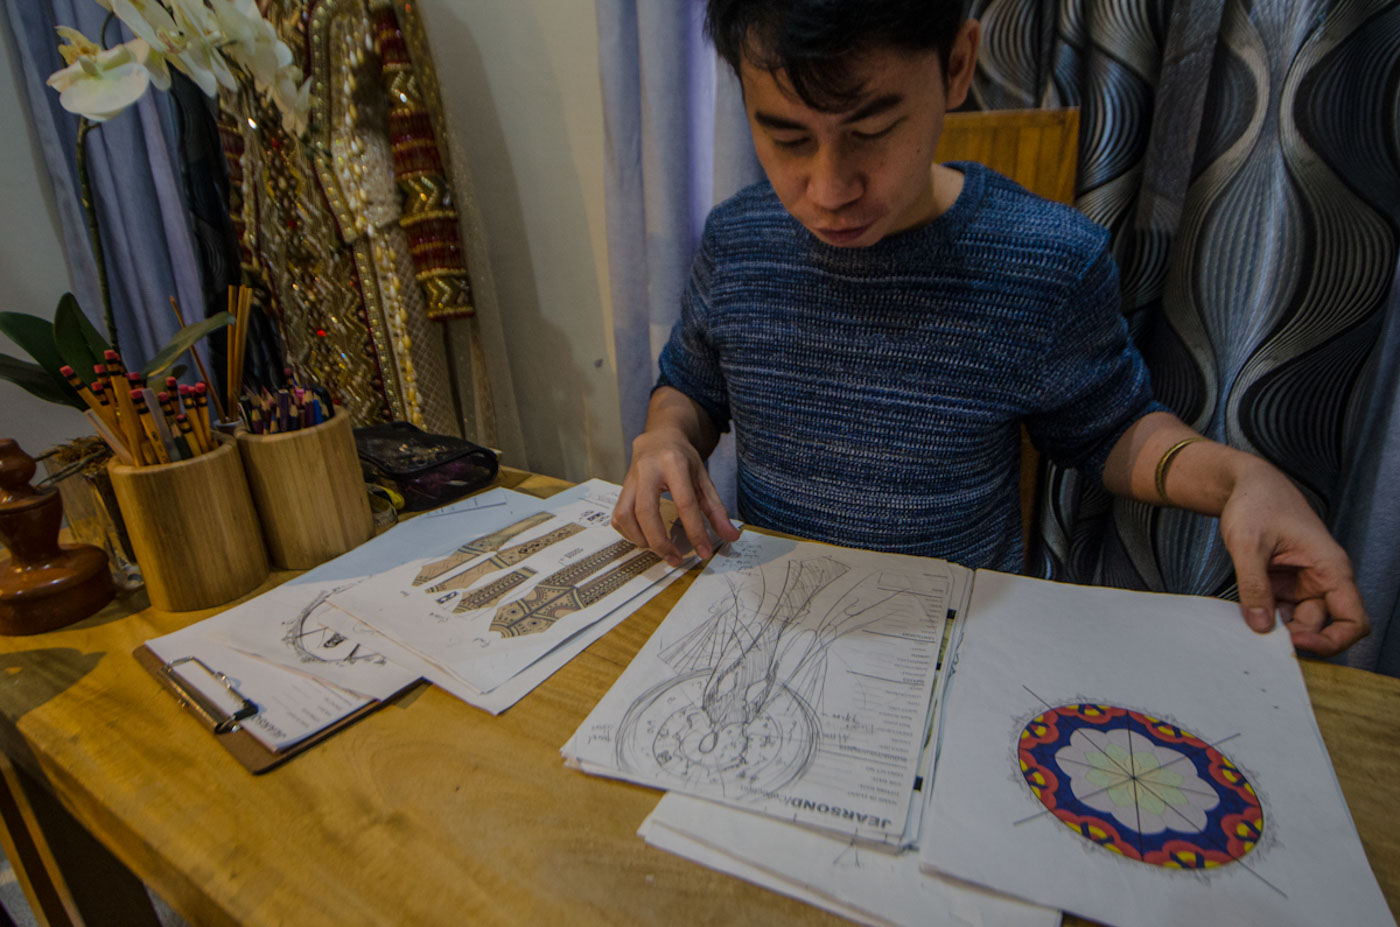 THE MAKING. Jearson shows the sketches of the national costume which he, Catriona and the team worked on.